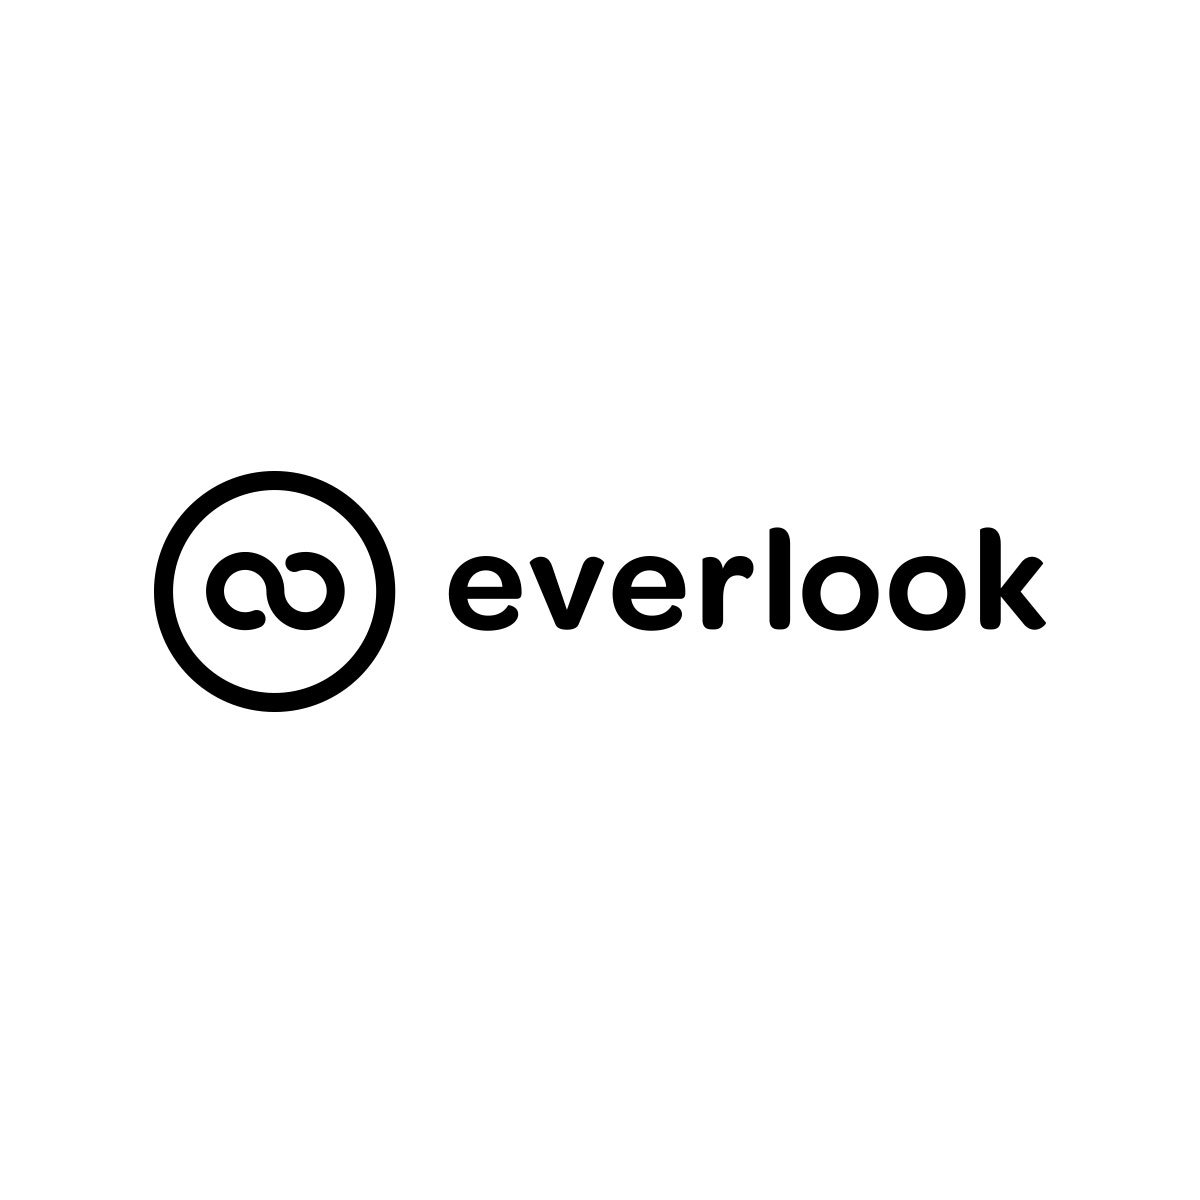 Everlook branding